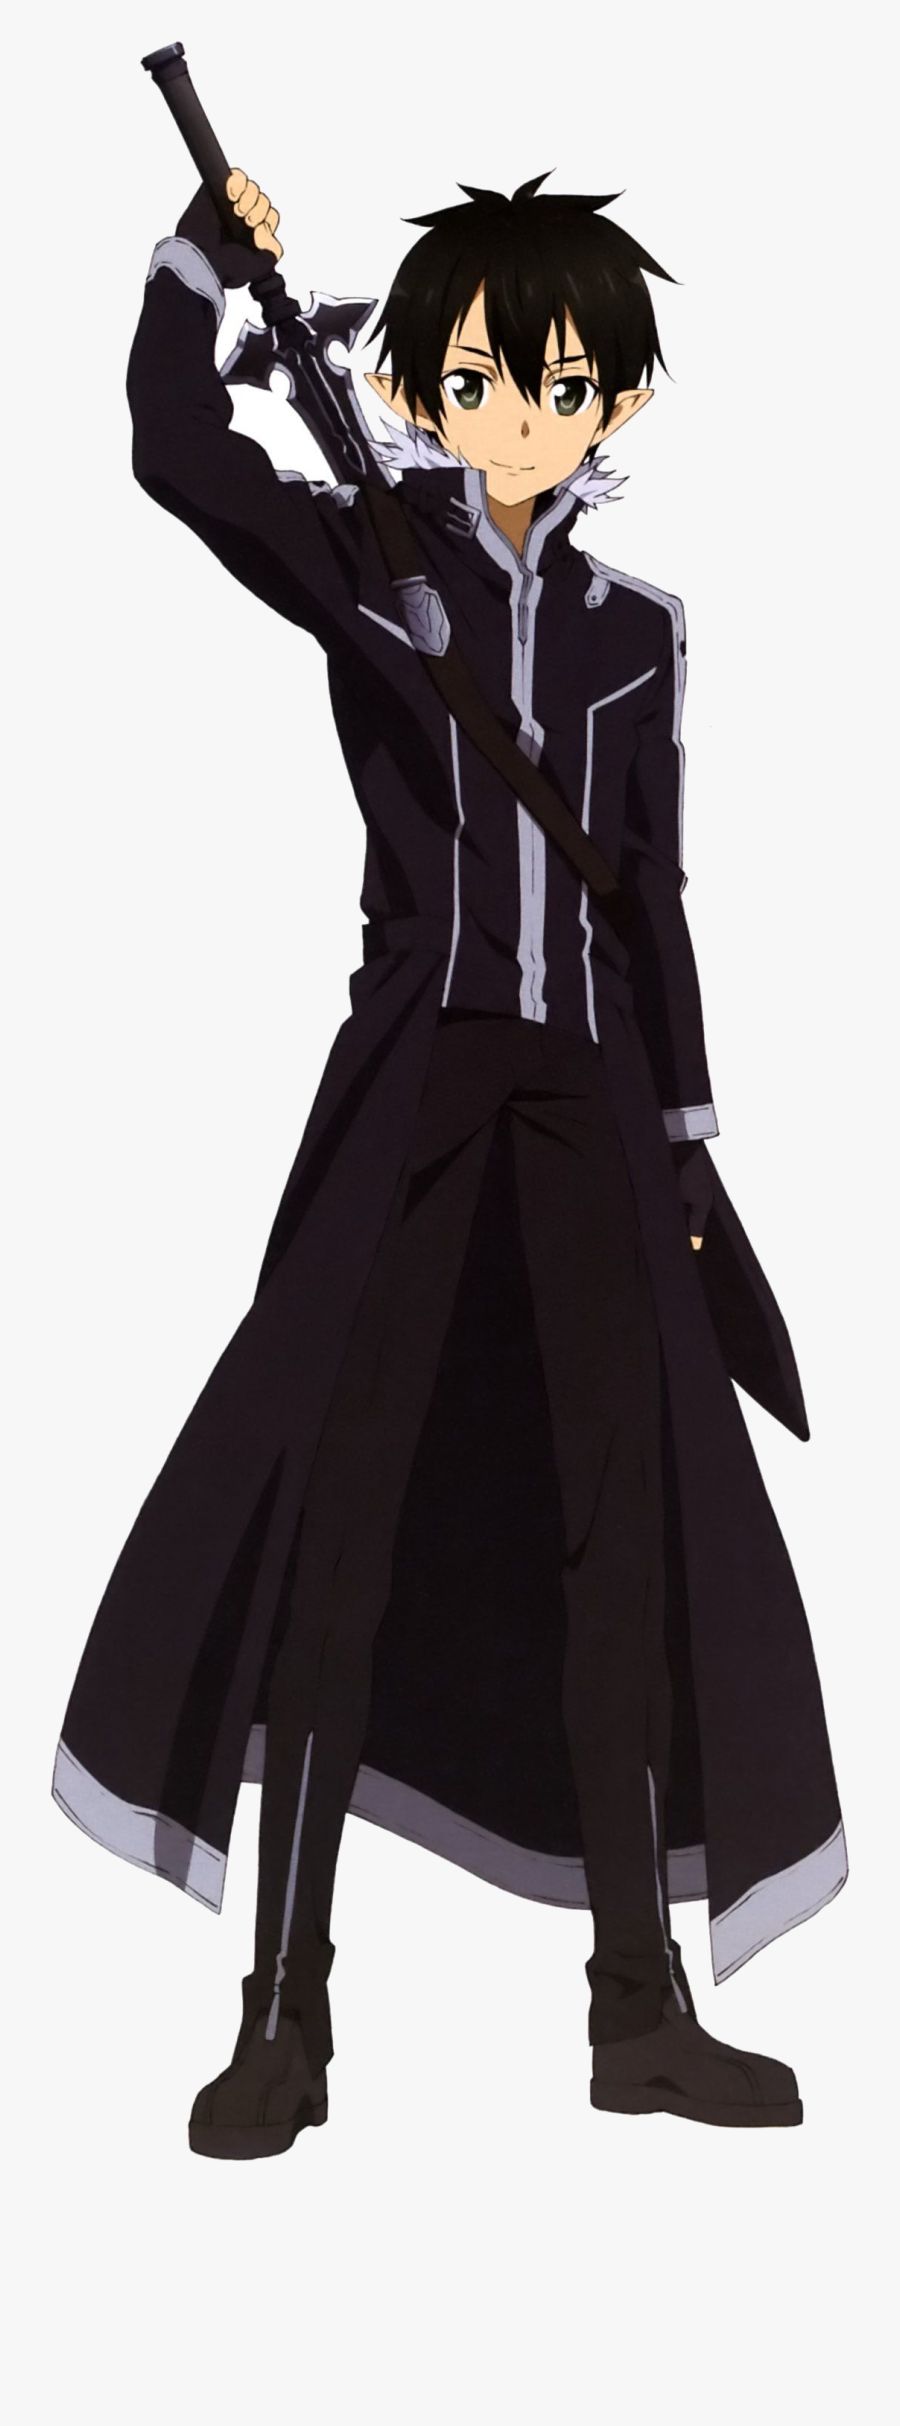 Sword Art Online Collection Of Clipart Free Best On - Kirito Sword Art Online Characters, Transparent Clipart